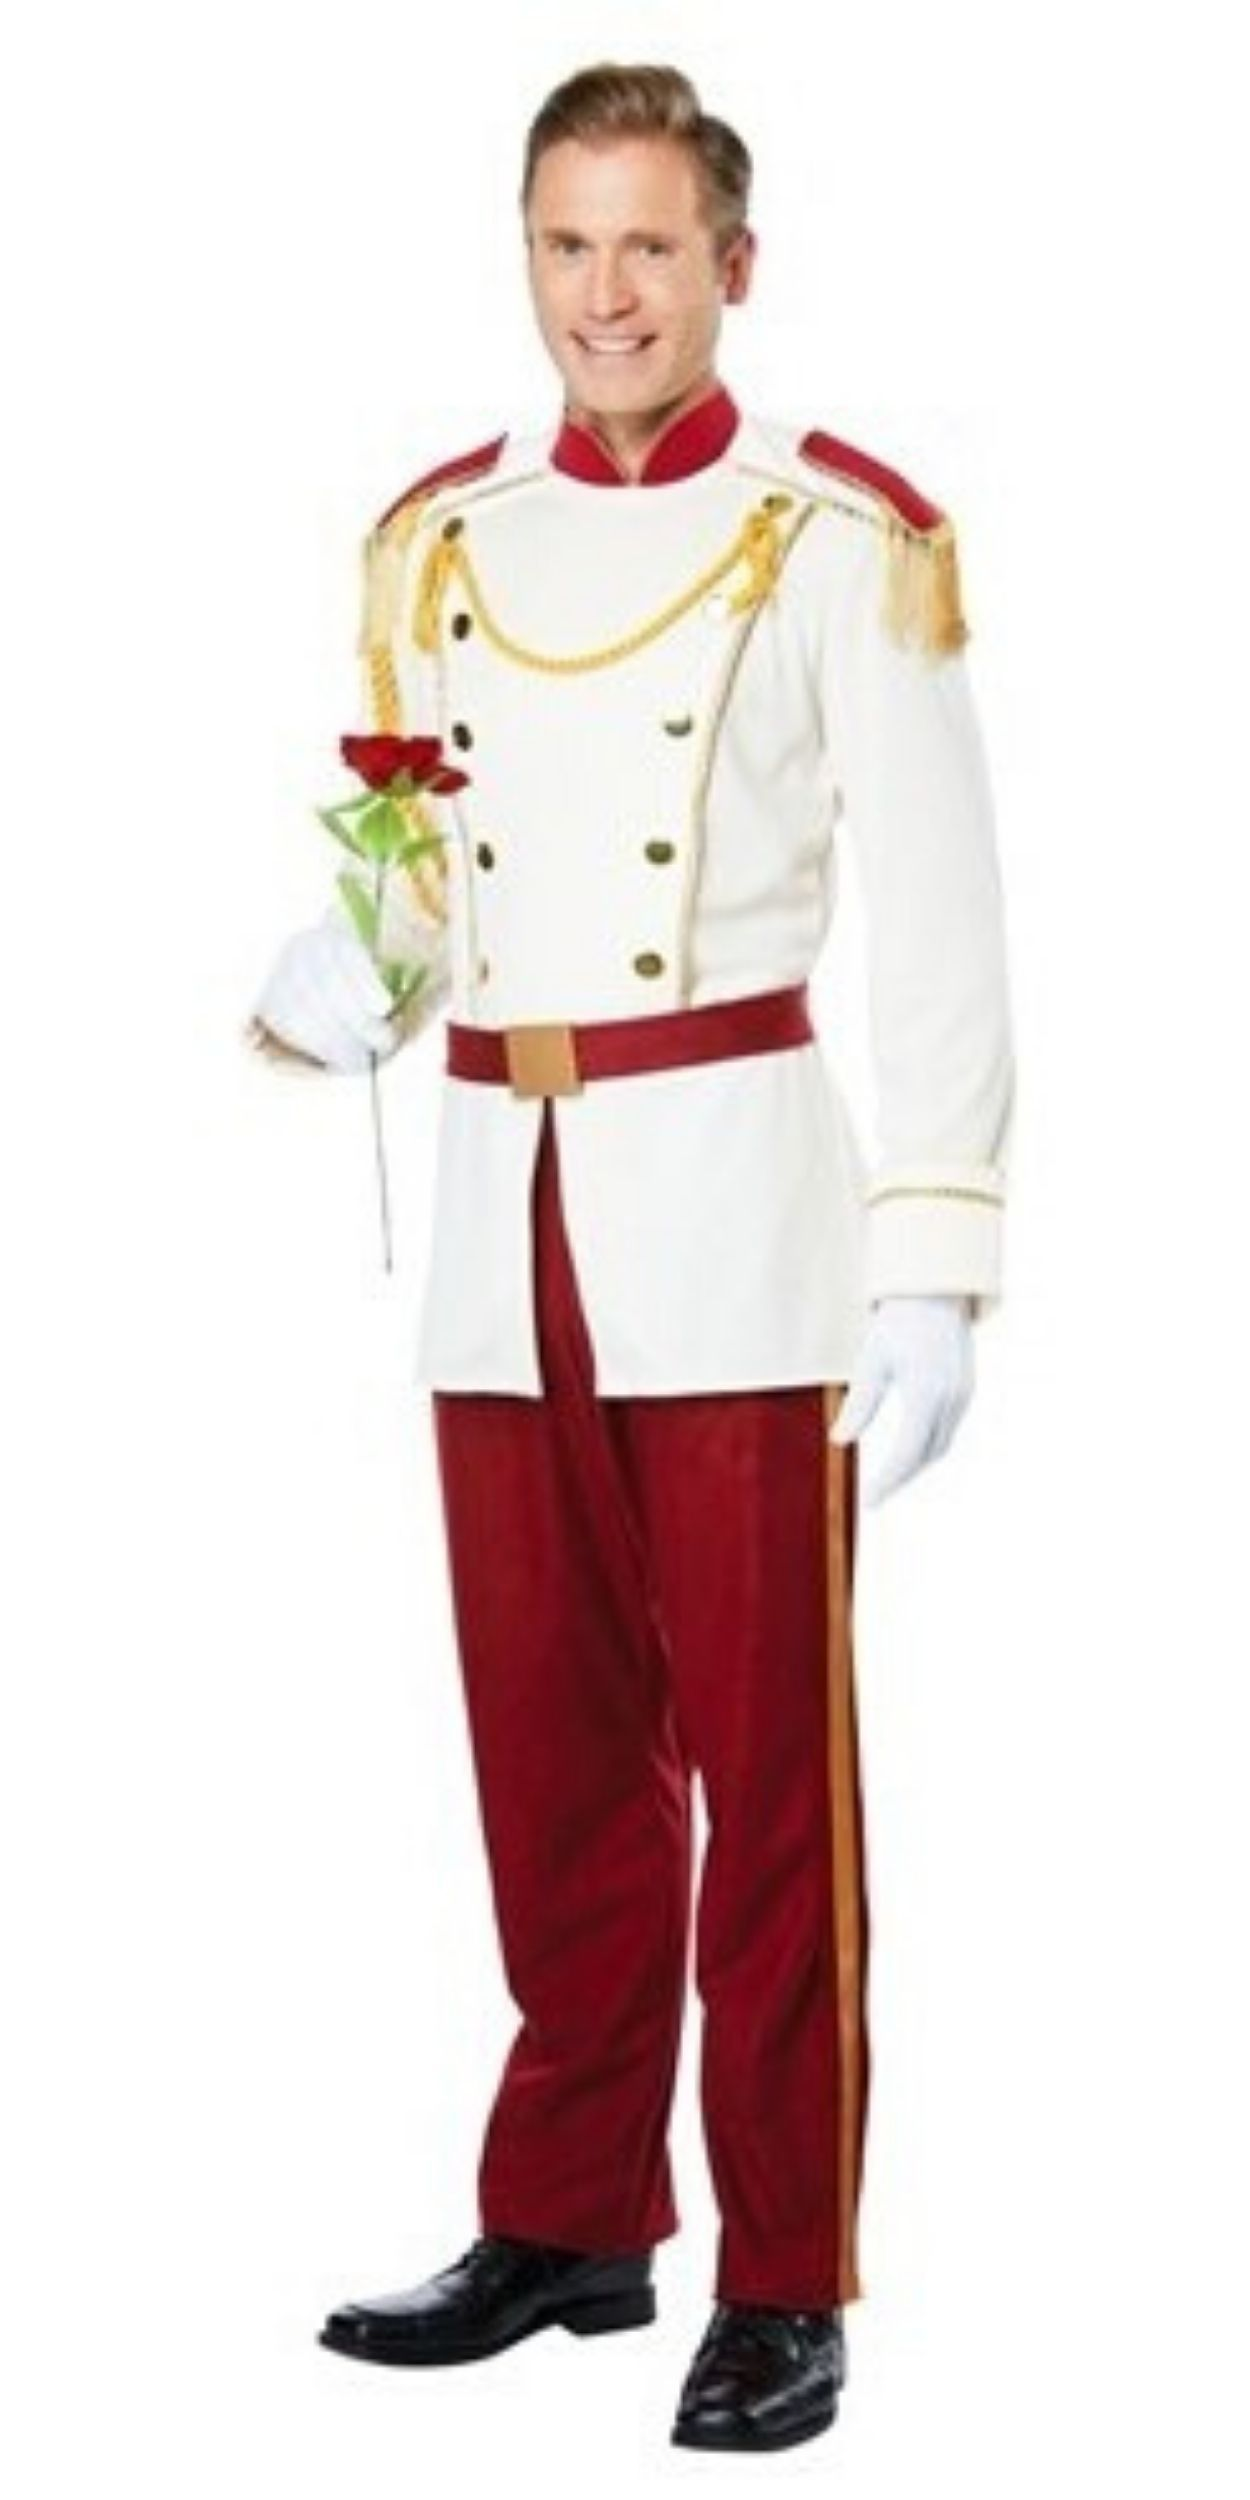 Man in Prince Charming Party Costume